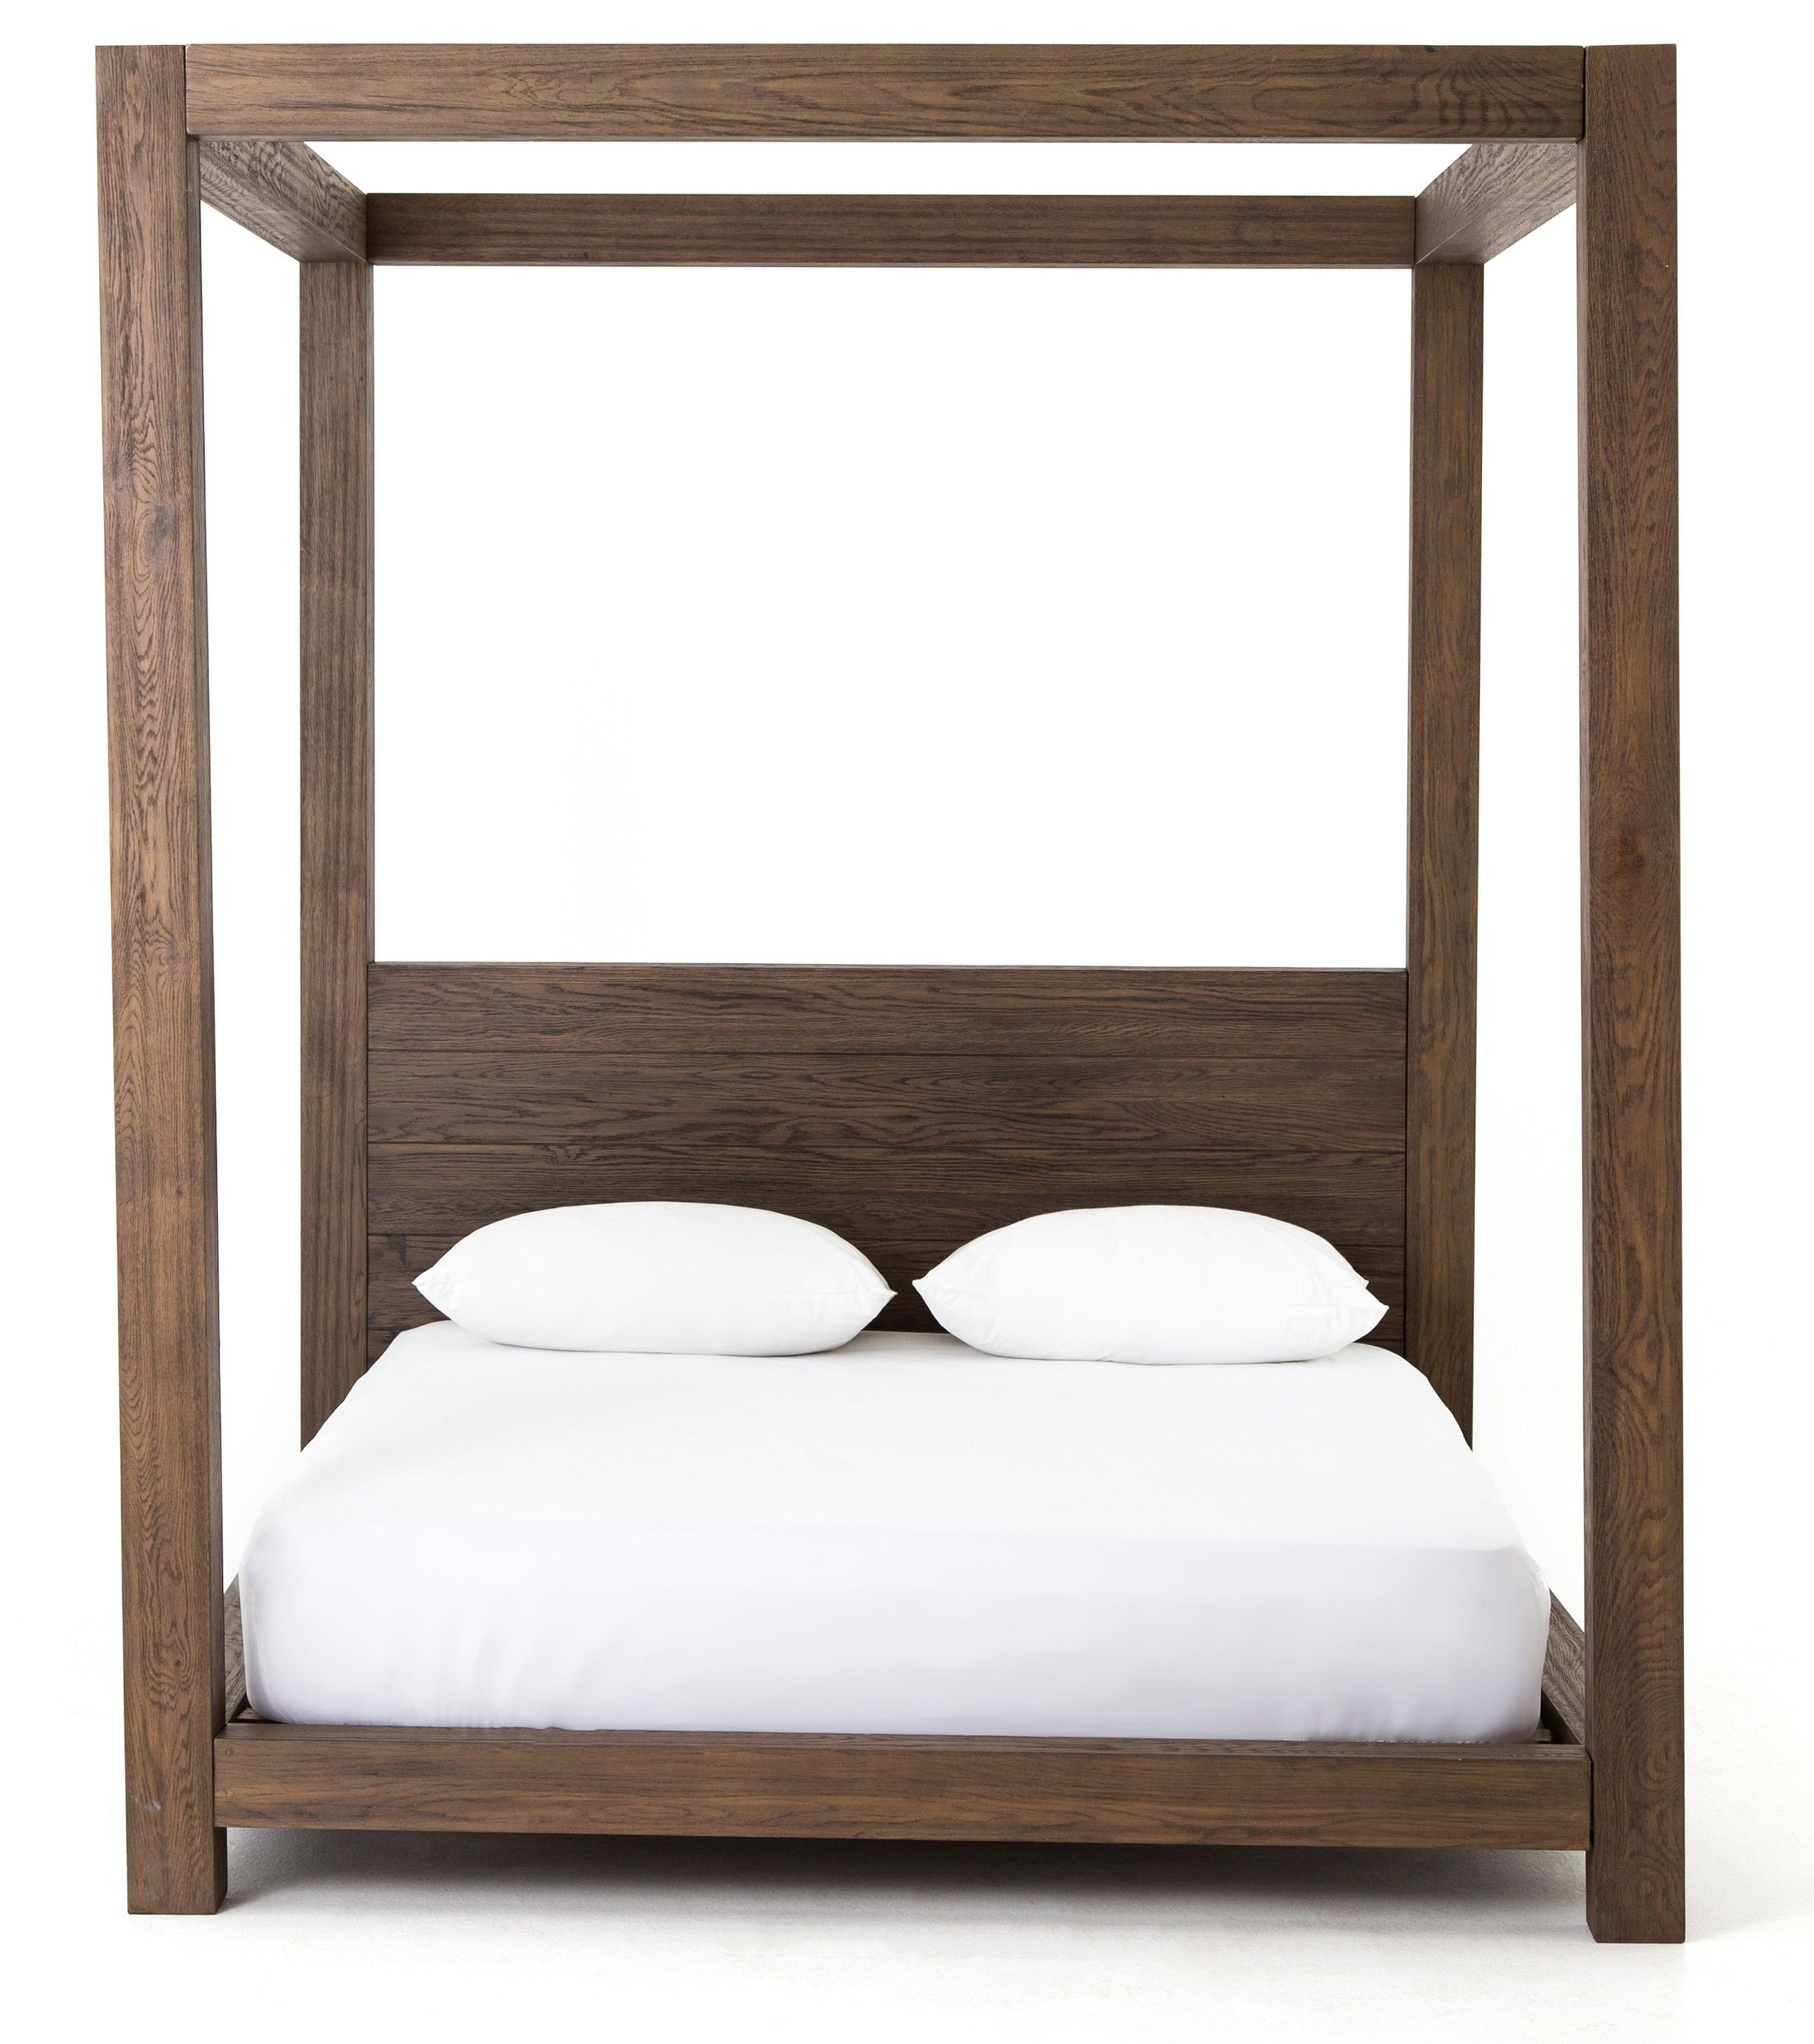 A Simple Four Poster Canopy Bedframe In Solid Oak Makes An Elegant